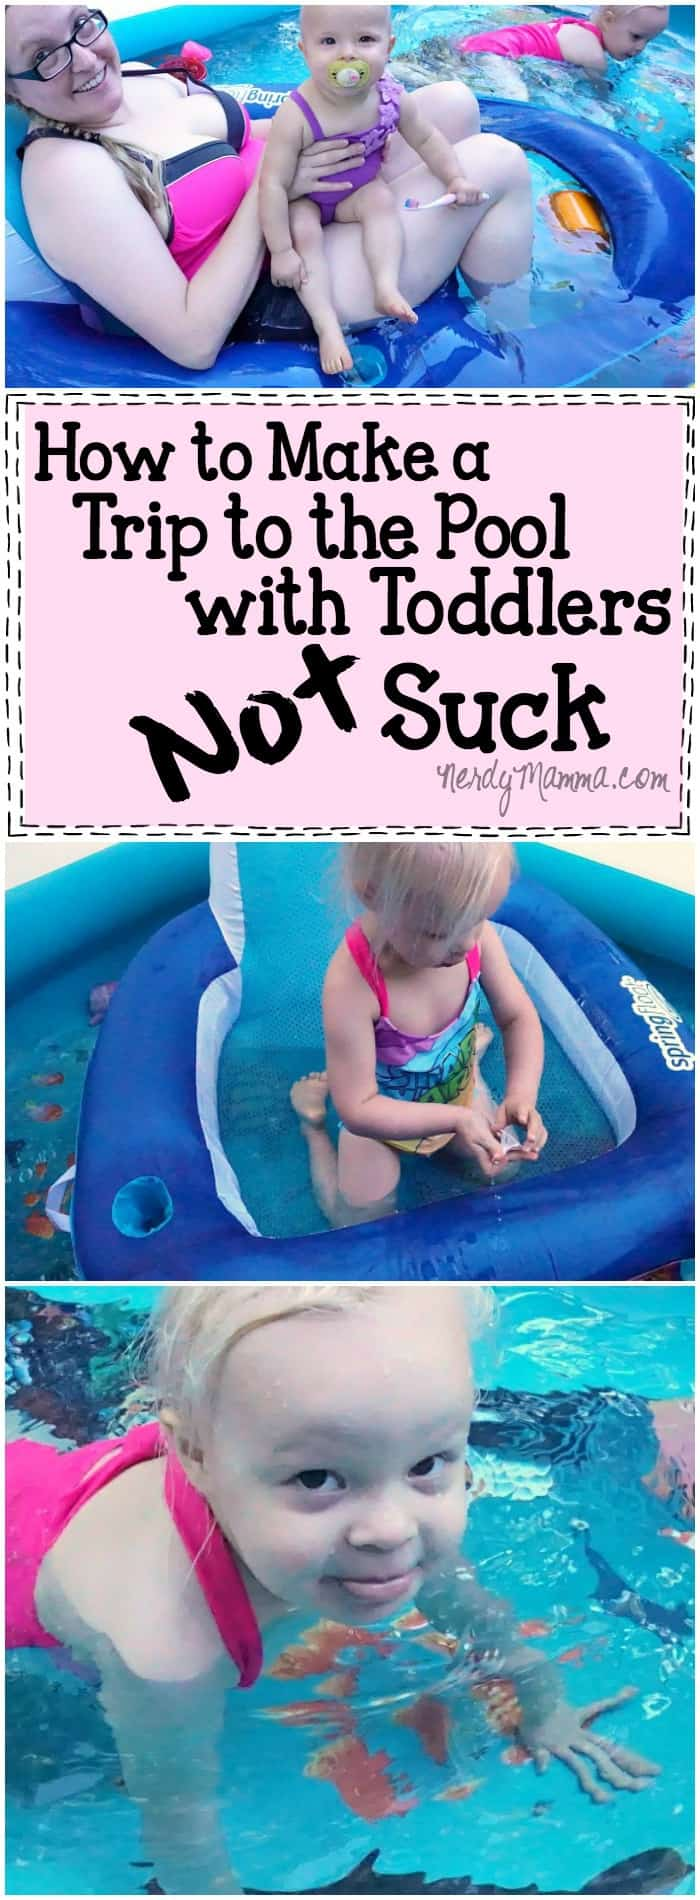 I love this mom's ideas on how to make a Trip to the Pool with Toddlers fun for both mom and the kids! LOL!